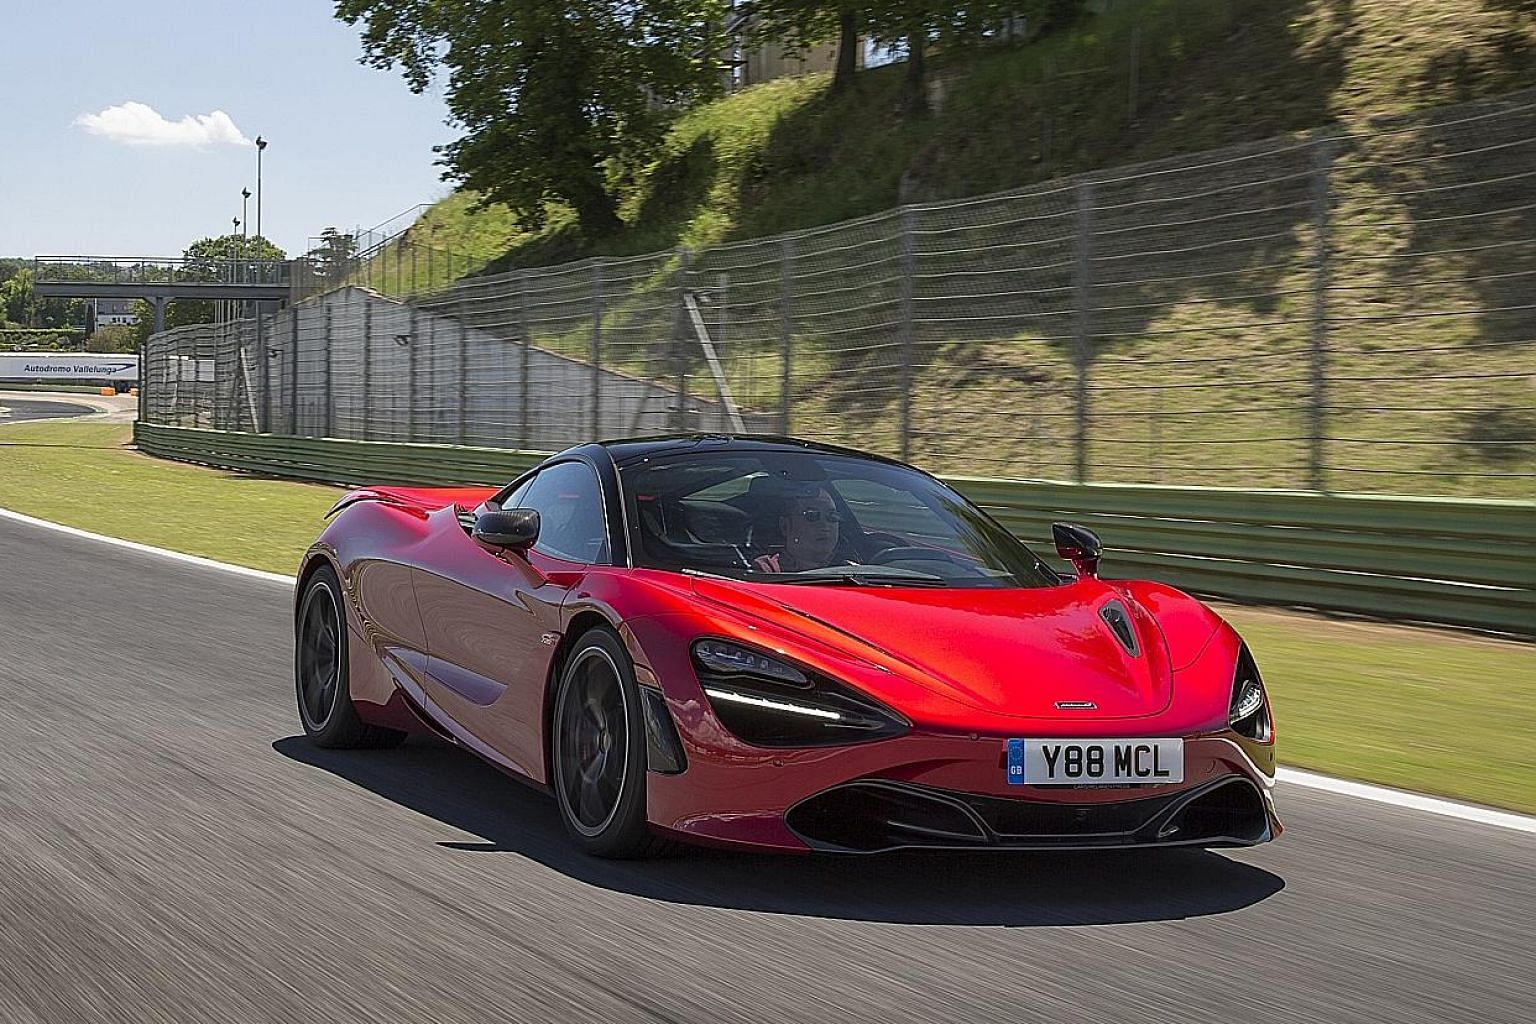 The McLaren 720S' gem of a motor offers razor-sharp power delivery and a titillating soundtrack through dual tailpipes. The cockpit has impressive all-round visibility for the driver.